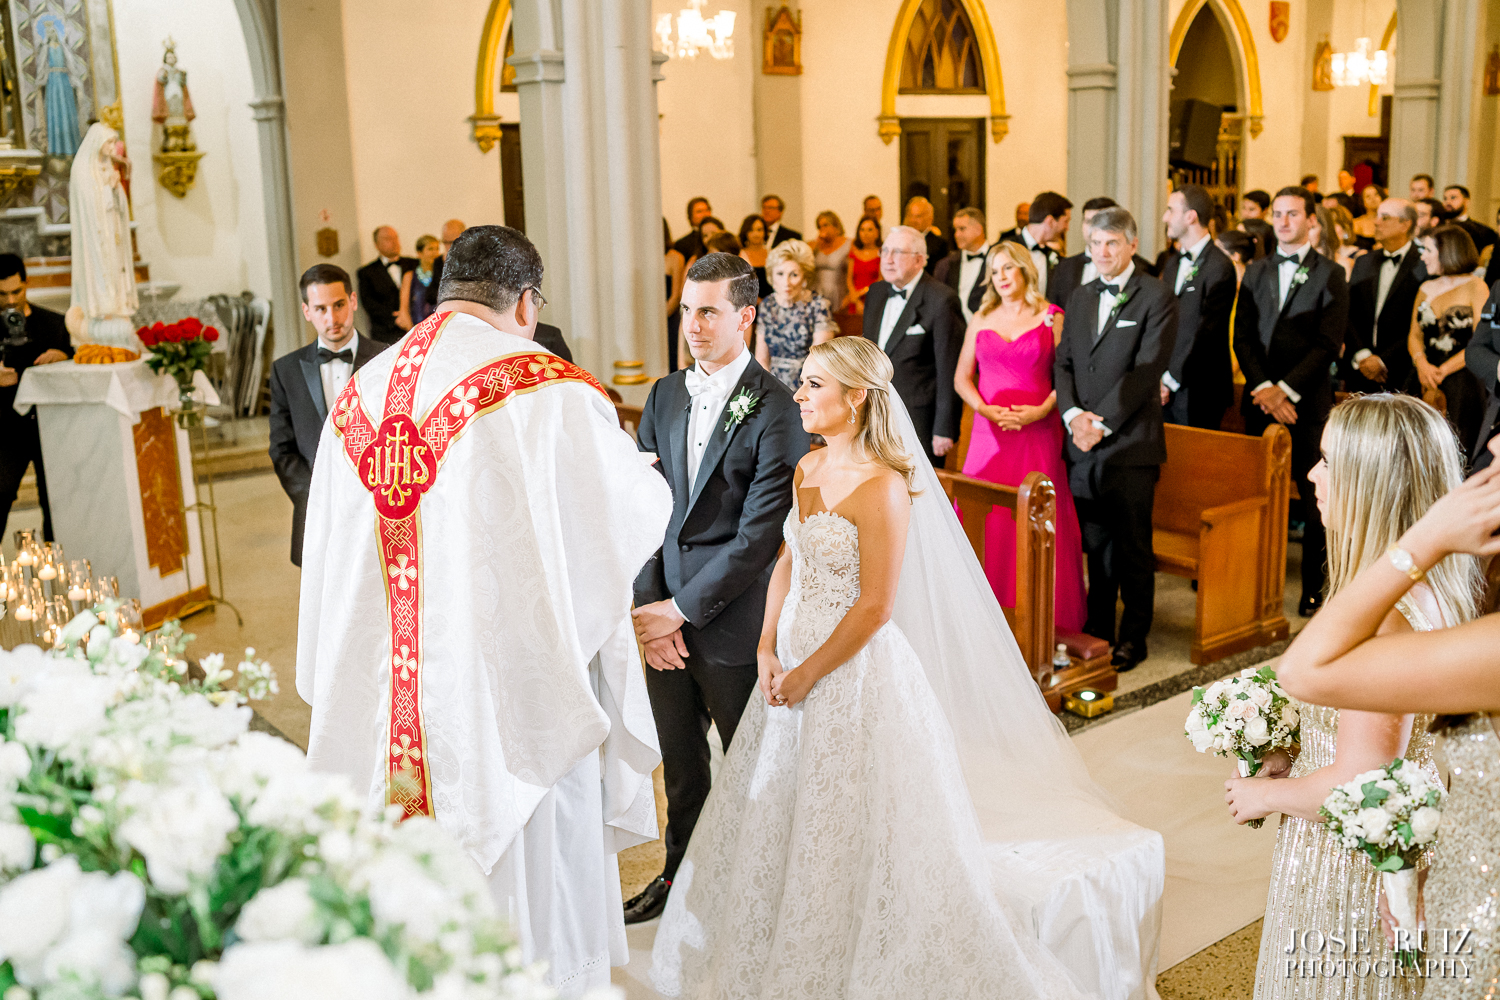 Jose Ruiz Photography- Carolina & Gabo Wedding Day-0094.jpg